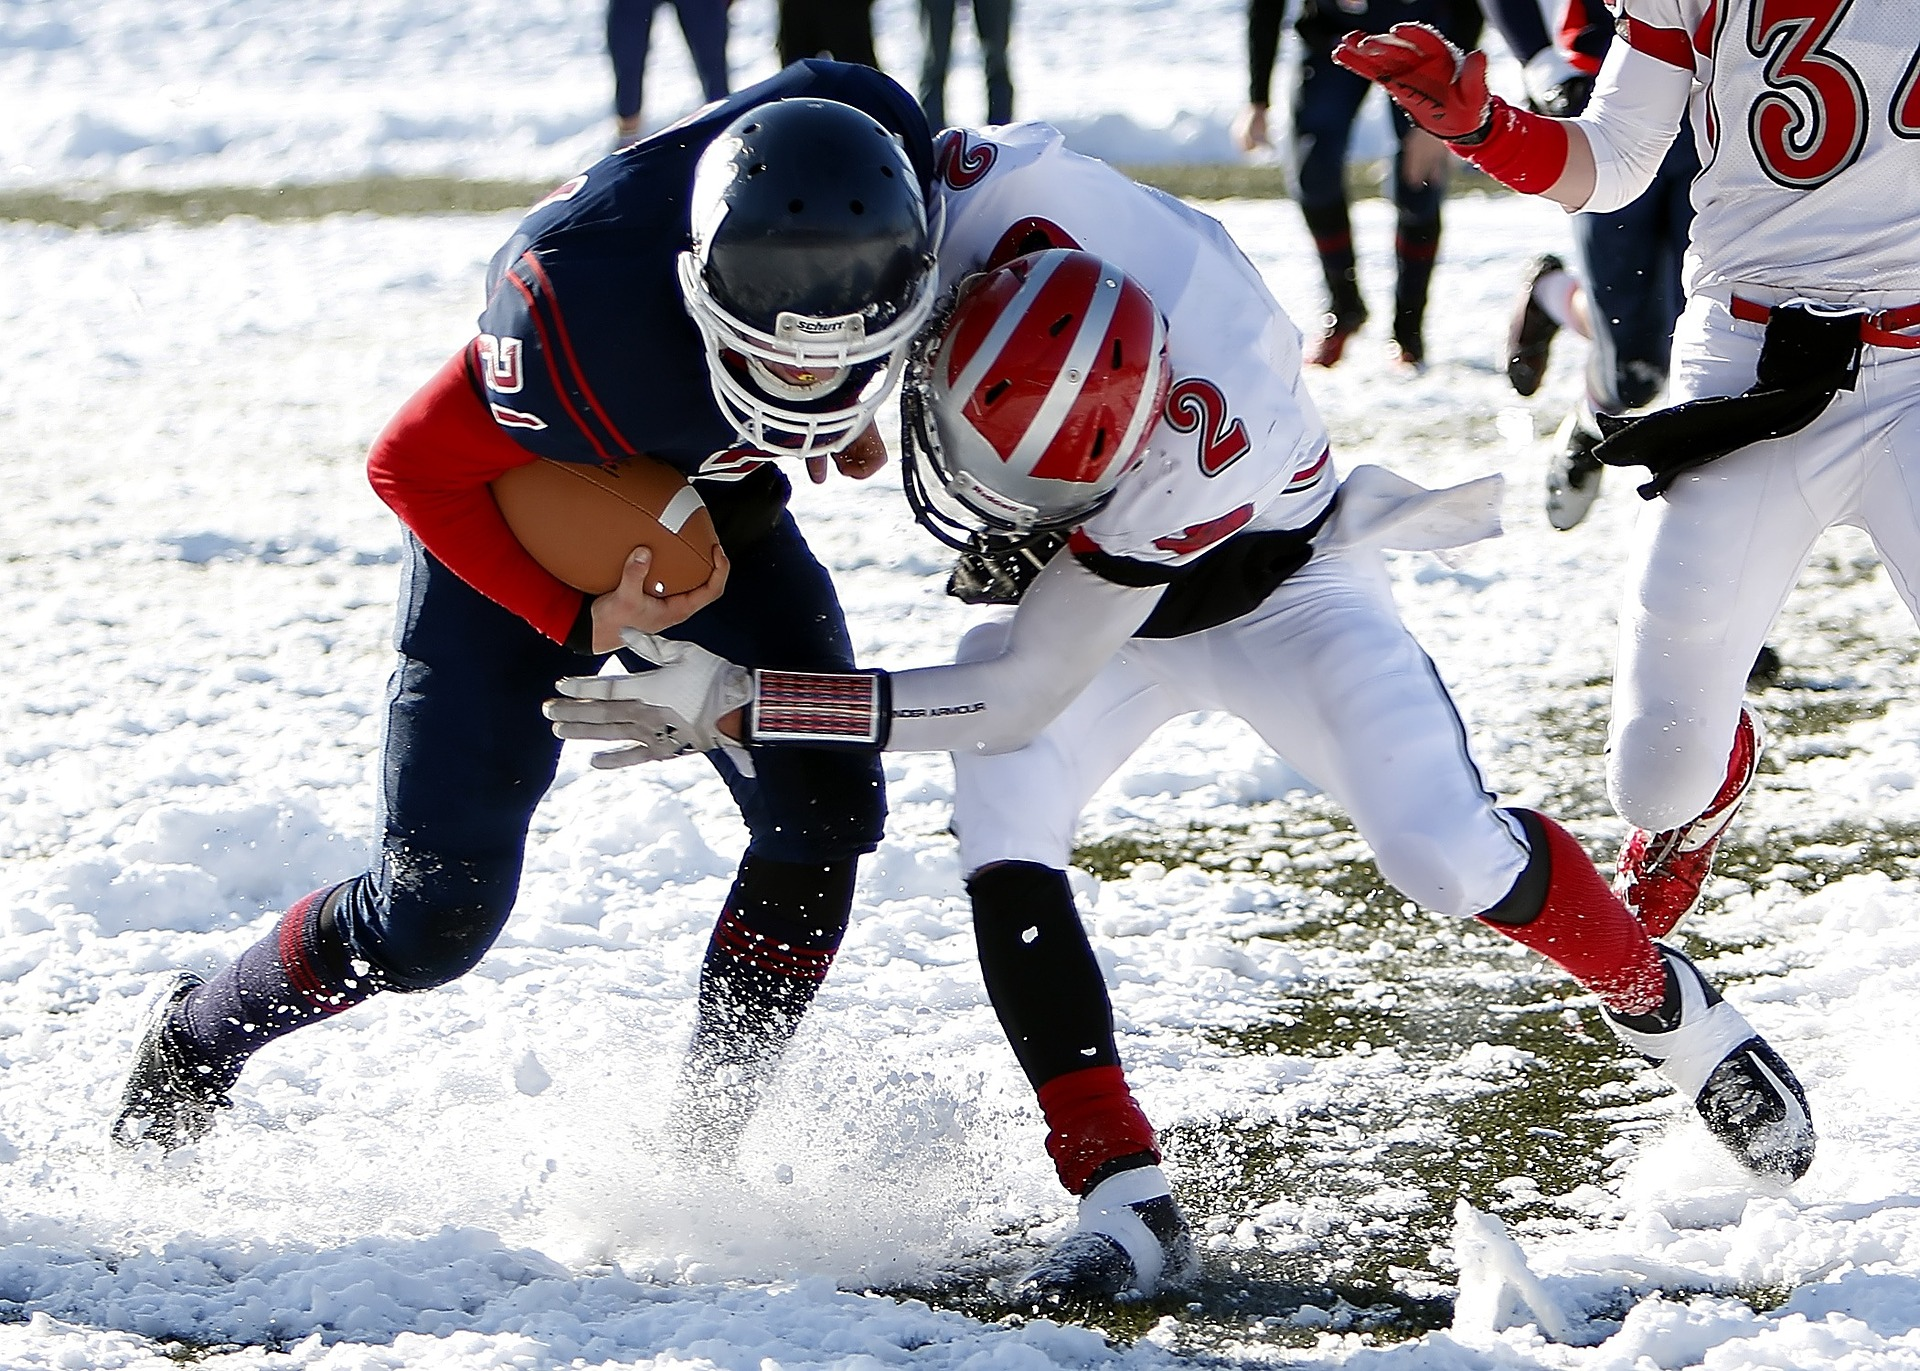 On a snowy field, one football player in a dark blue uniform, is holding a football as another football player from the opposing team in a white uniform, tackles the player with the football and their helmets collide